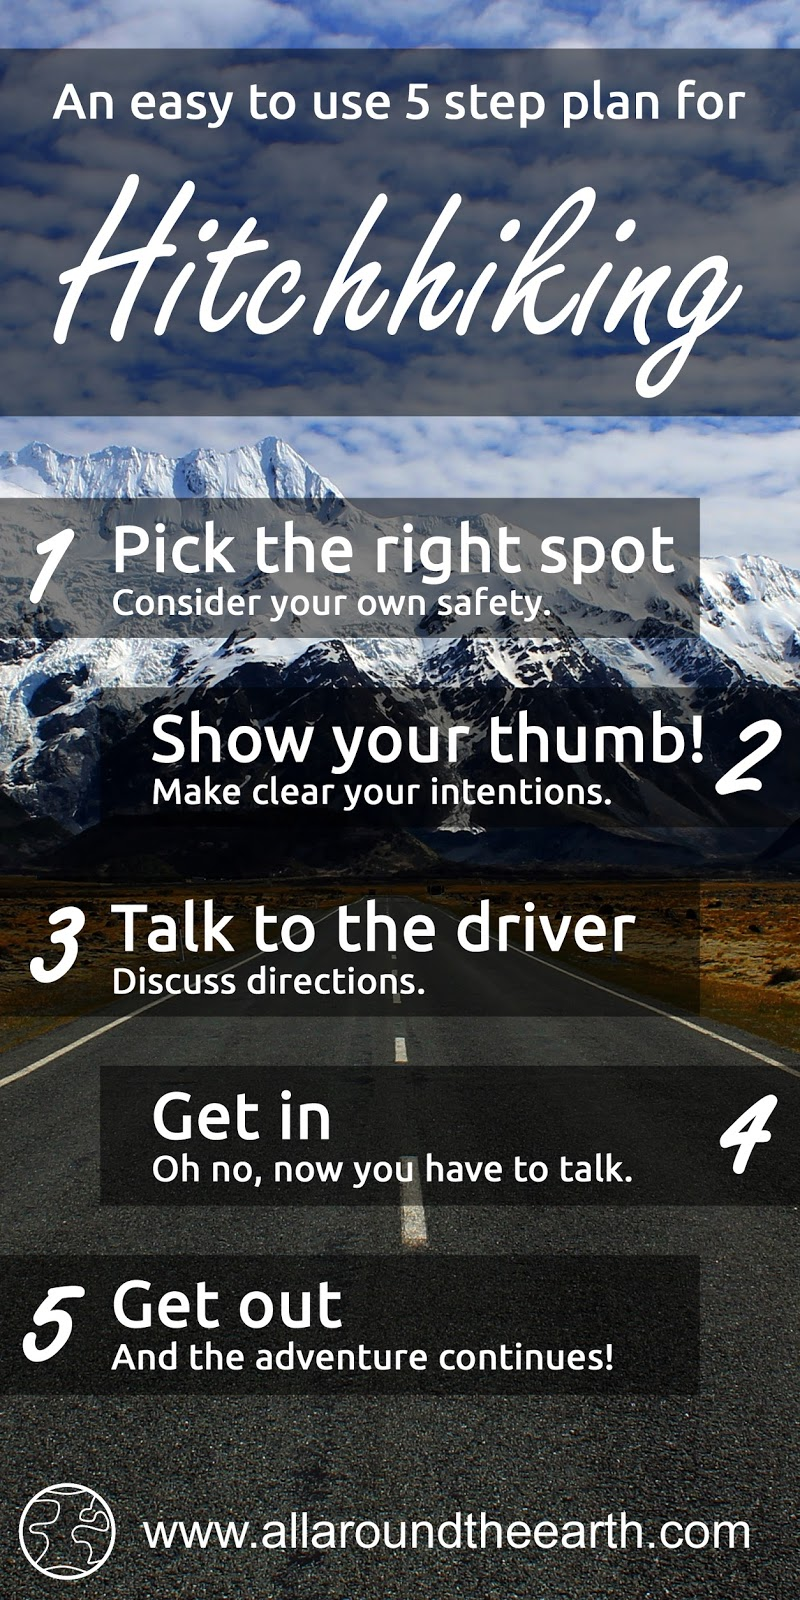 A 5 step plan that shows you how to hitchhike